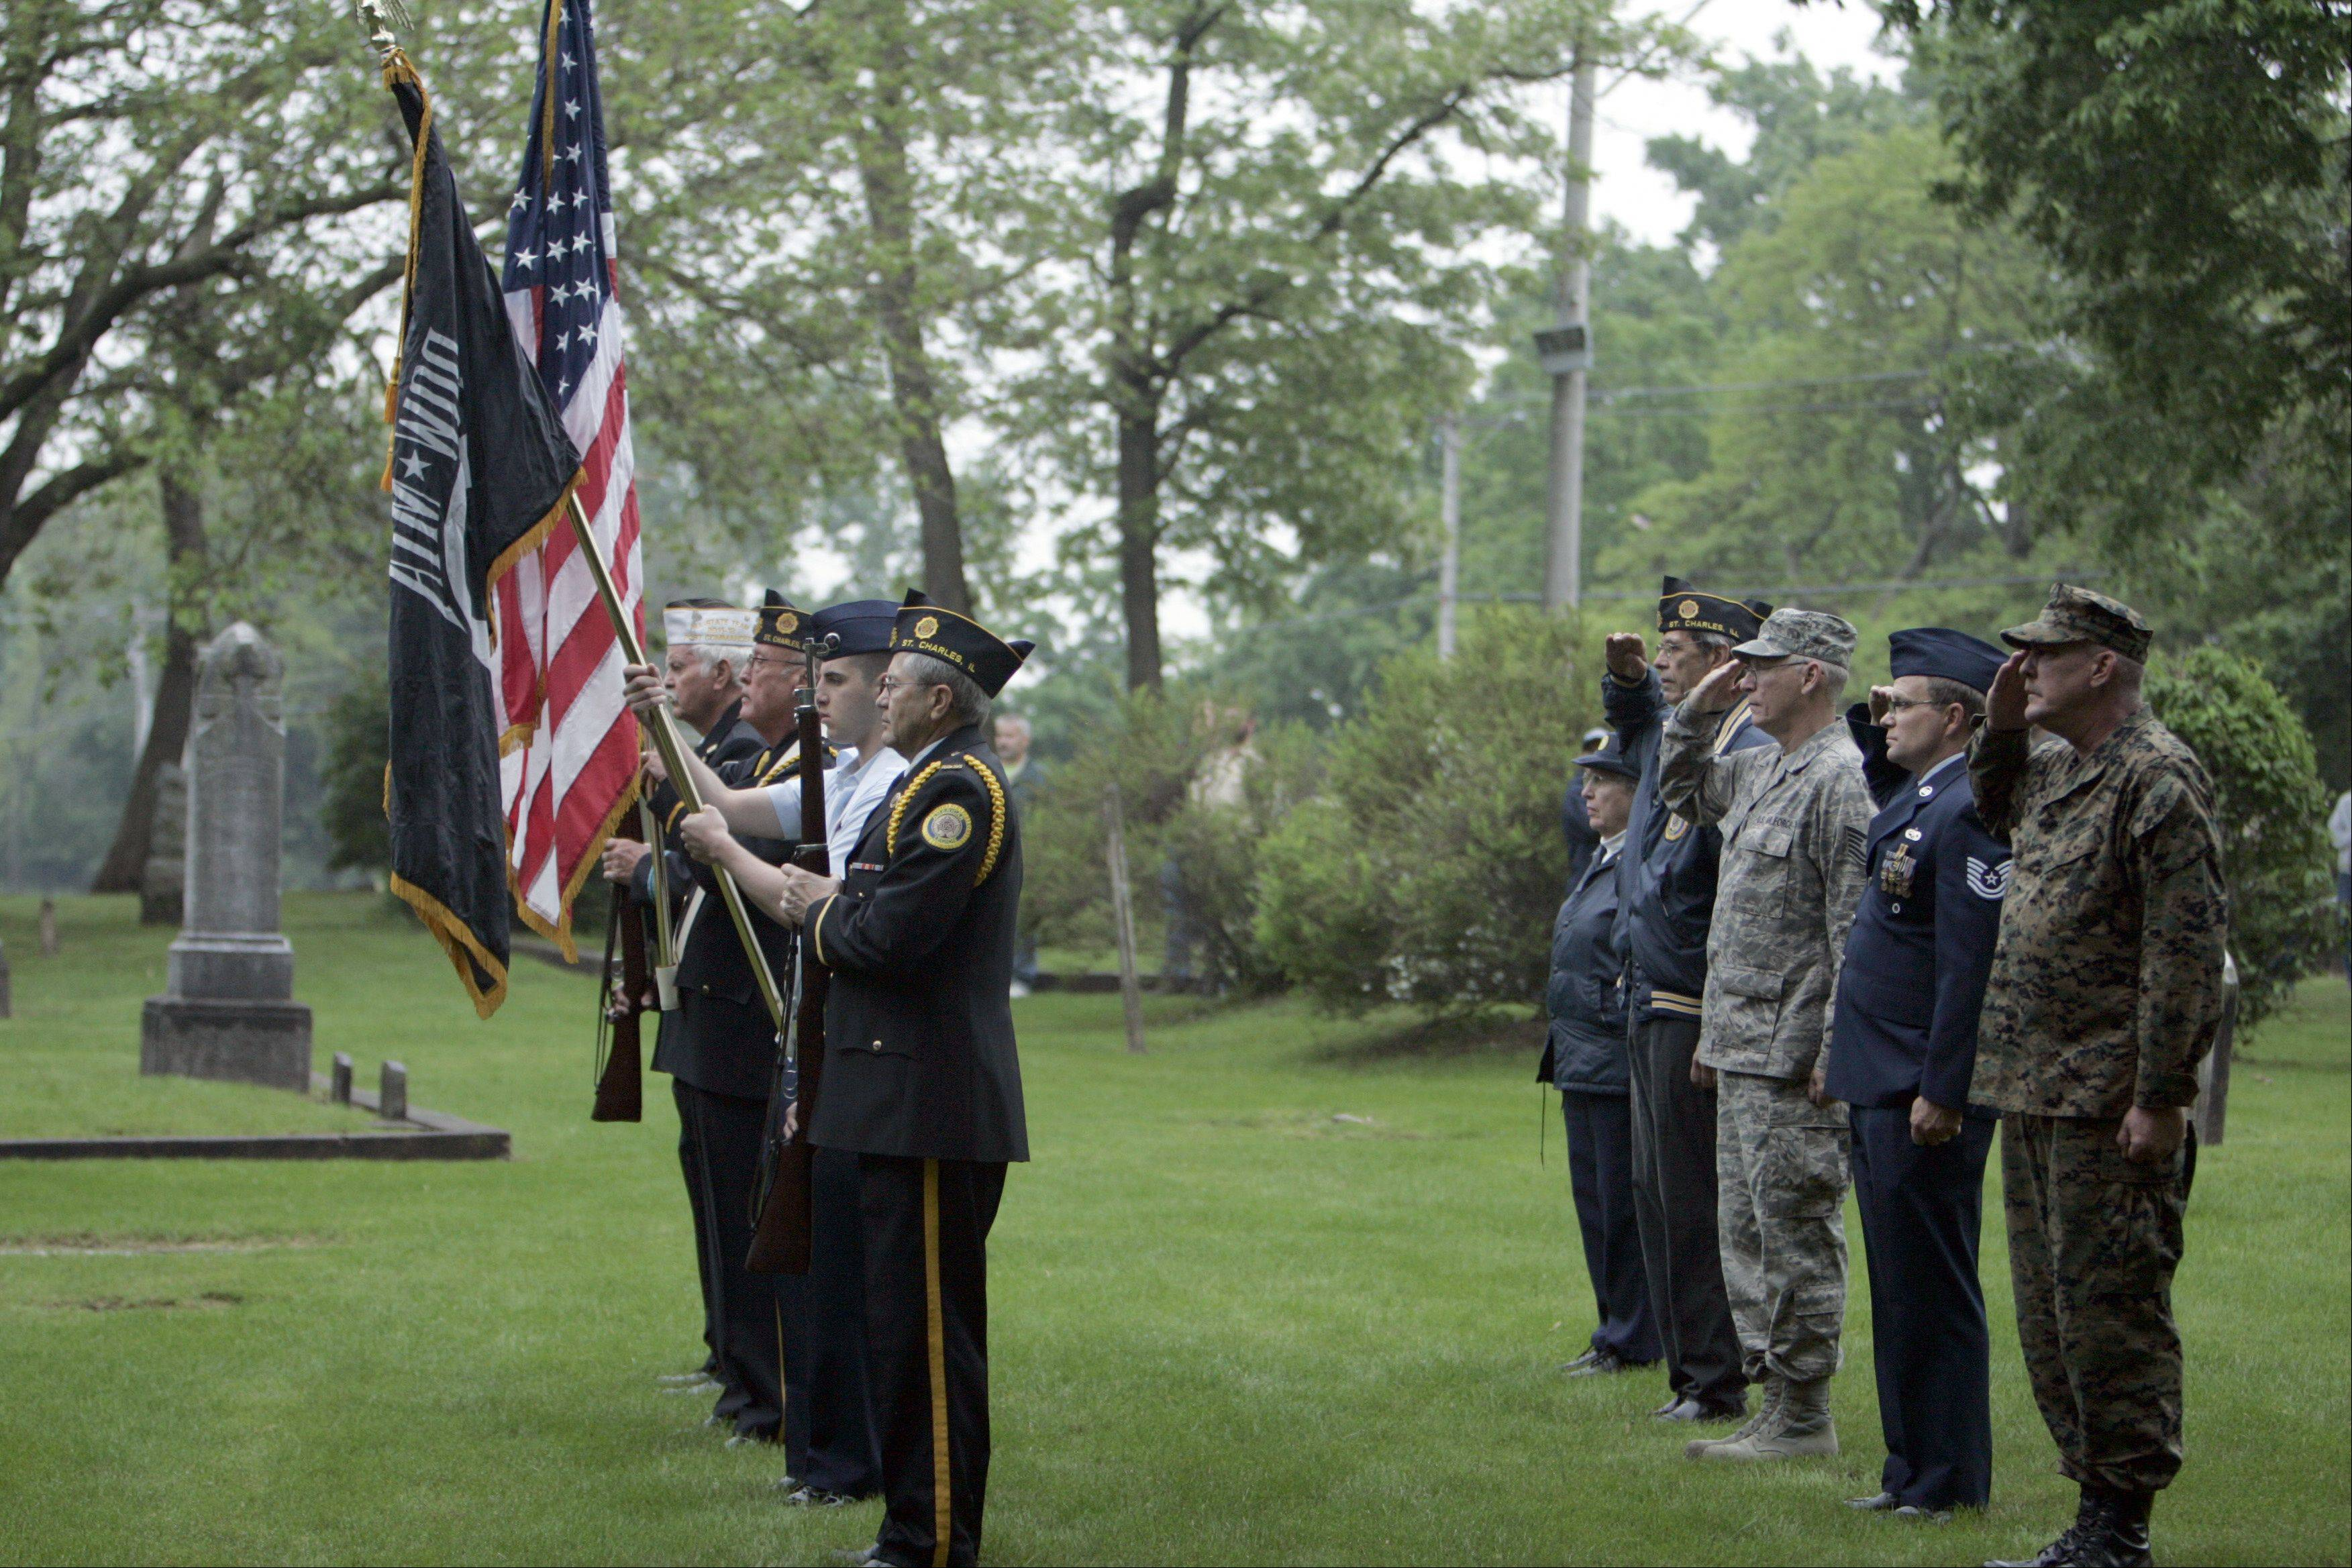 A color guard presents the colors Monday during the Memorial Day celebration at South Cemetery in St. Charles.